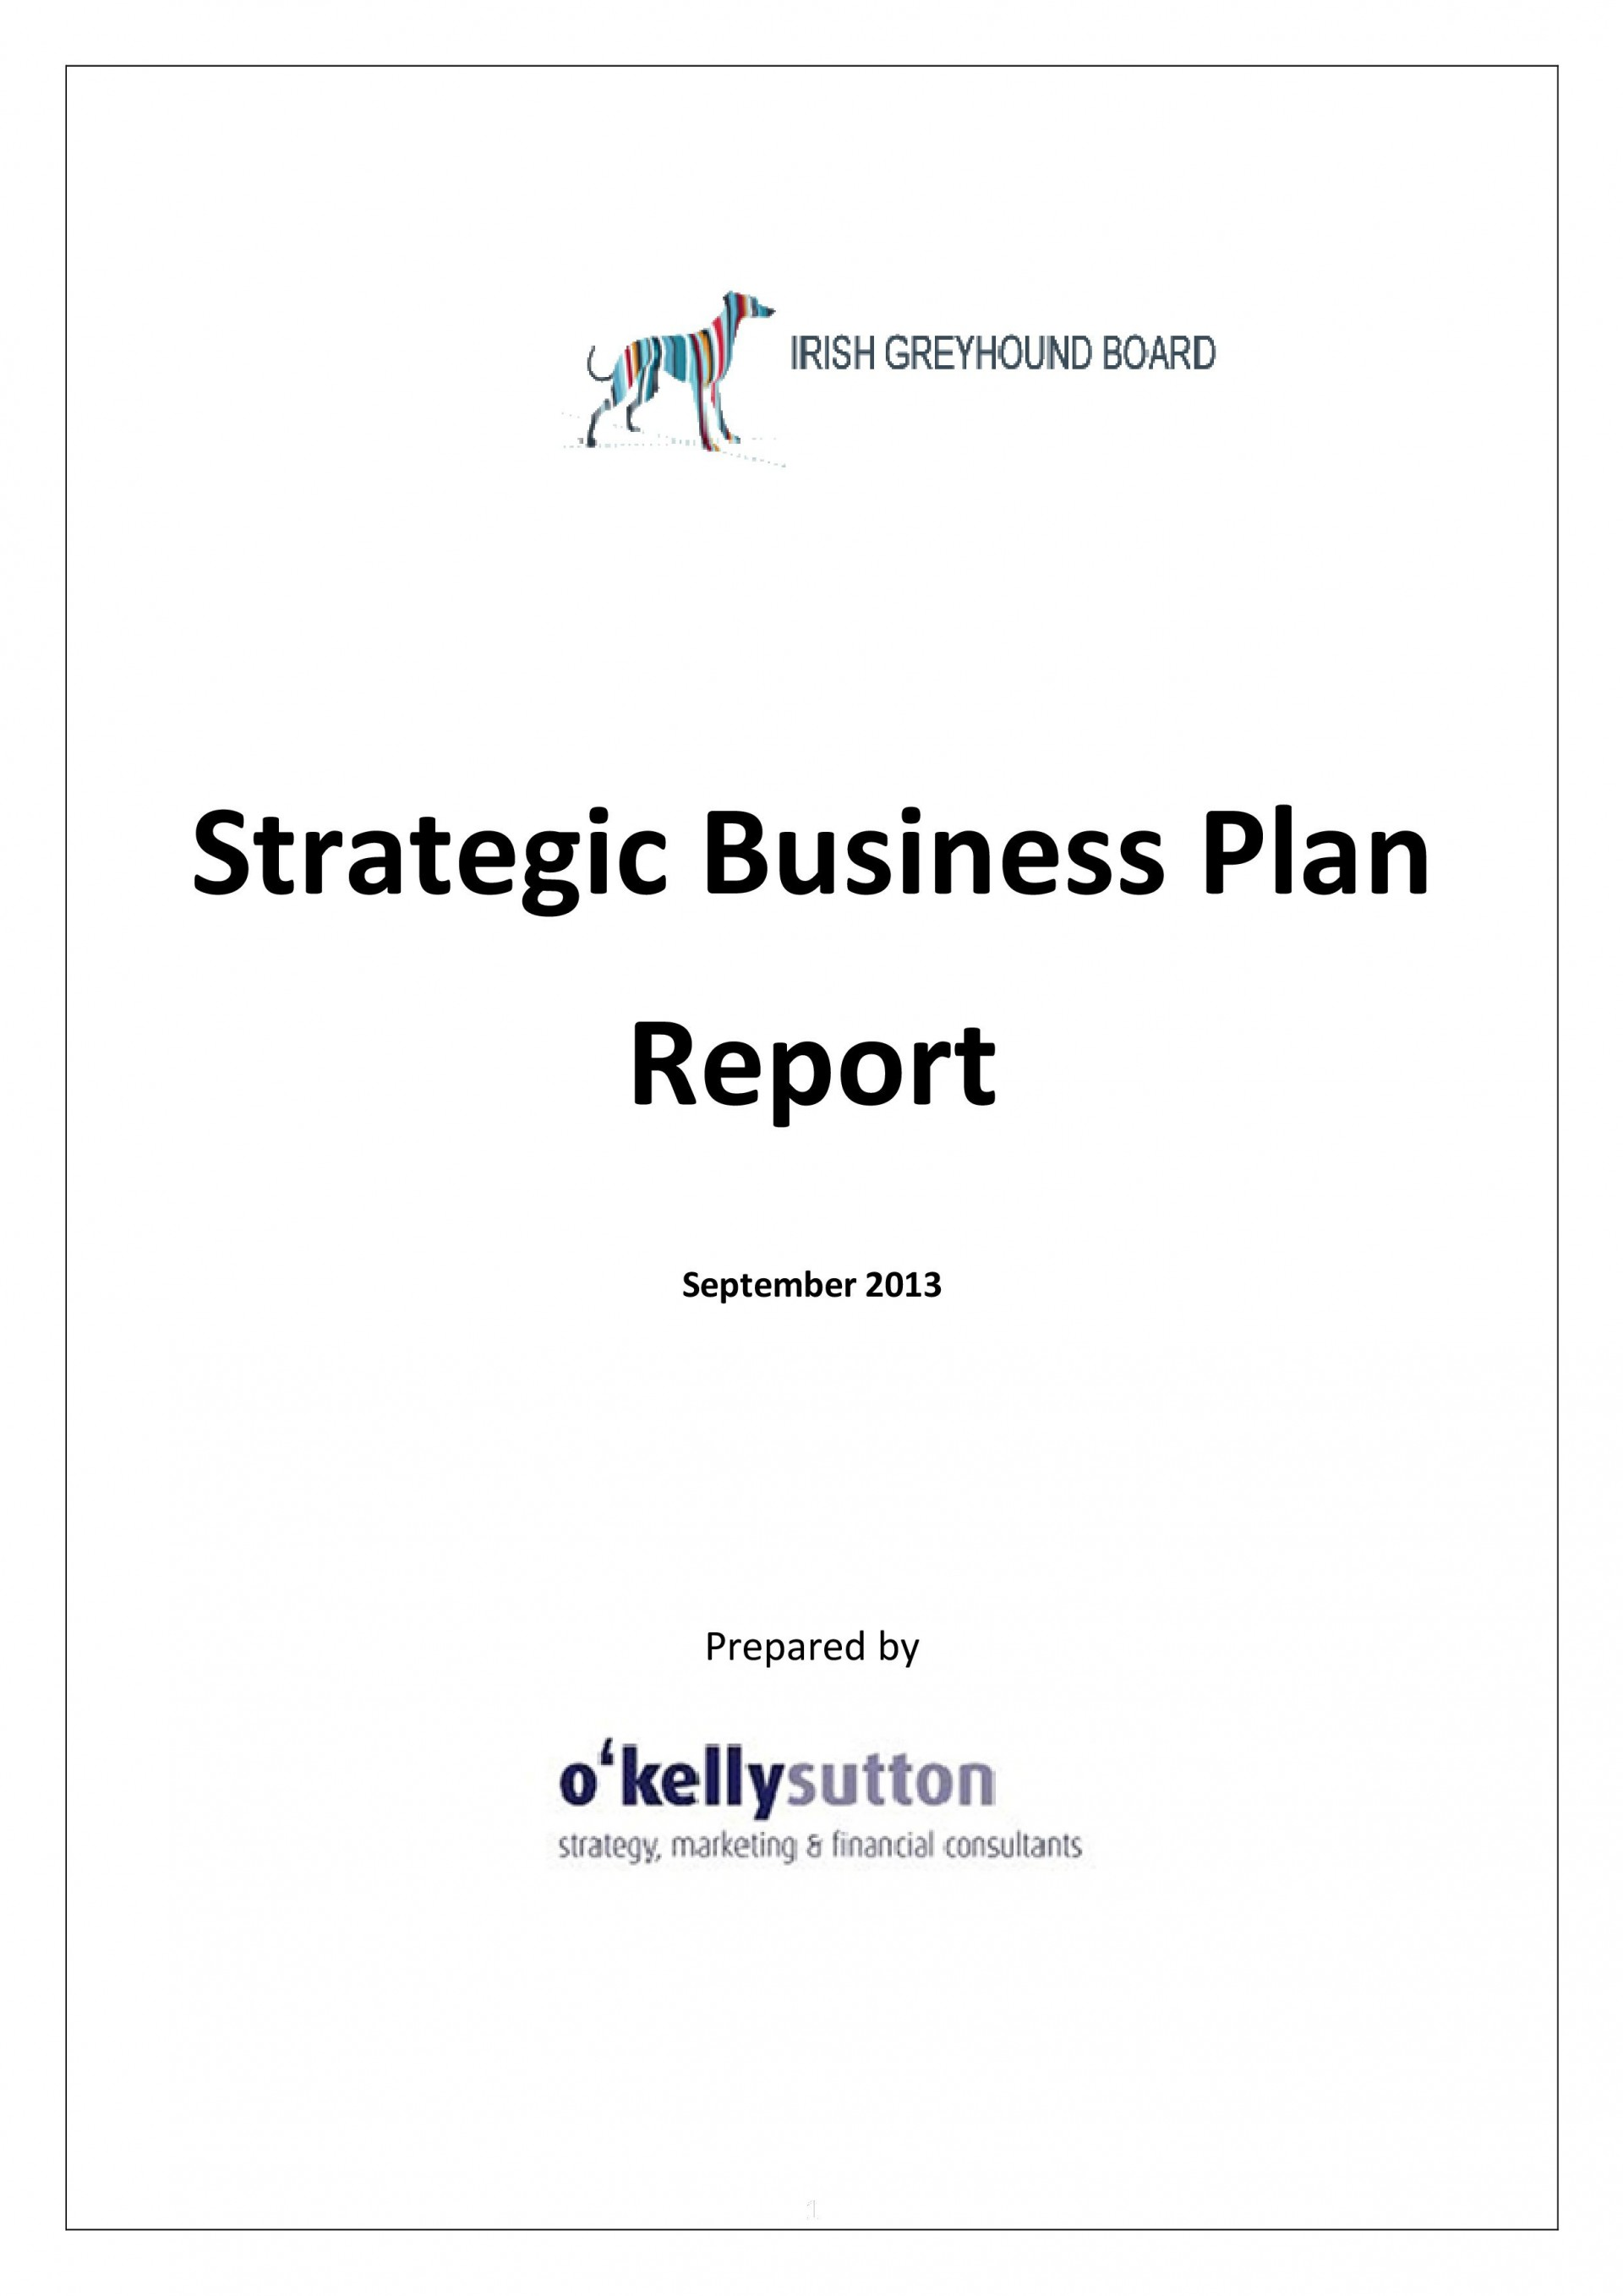 003 Awesome Strategic Busines Plan Template Highest Quality  Doc Word Sample1920